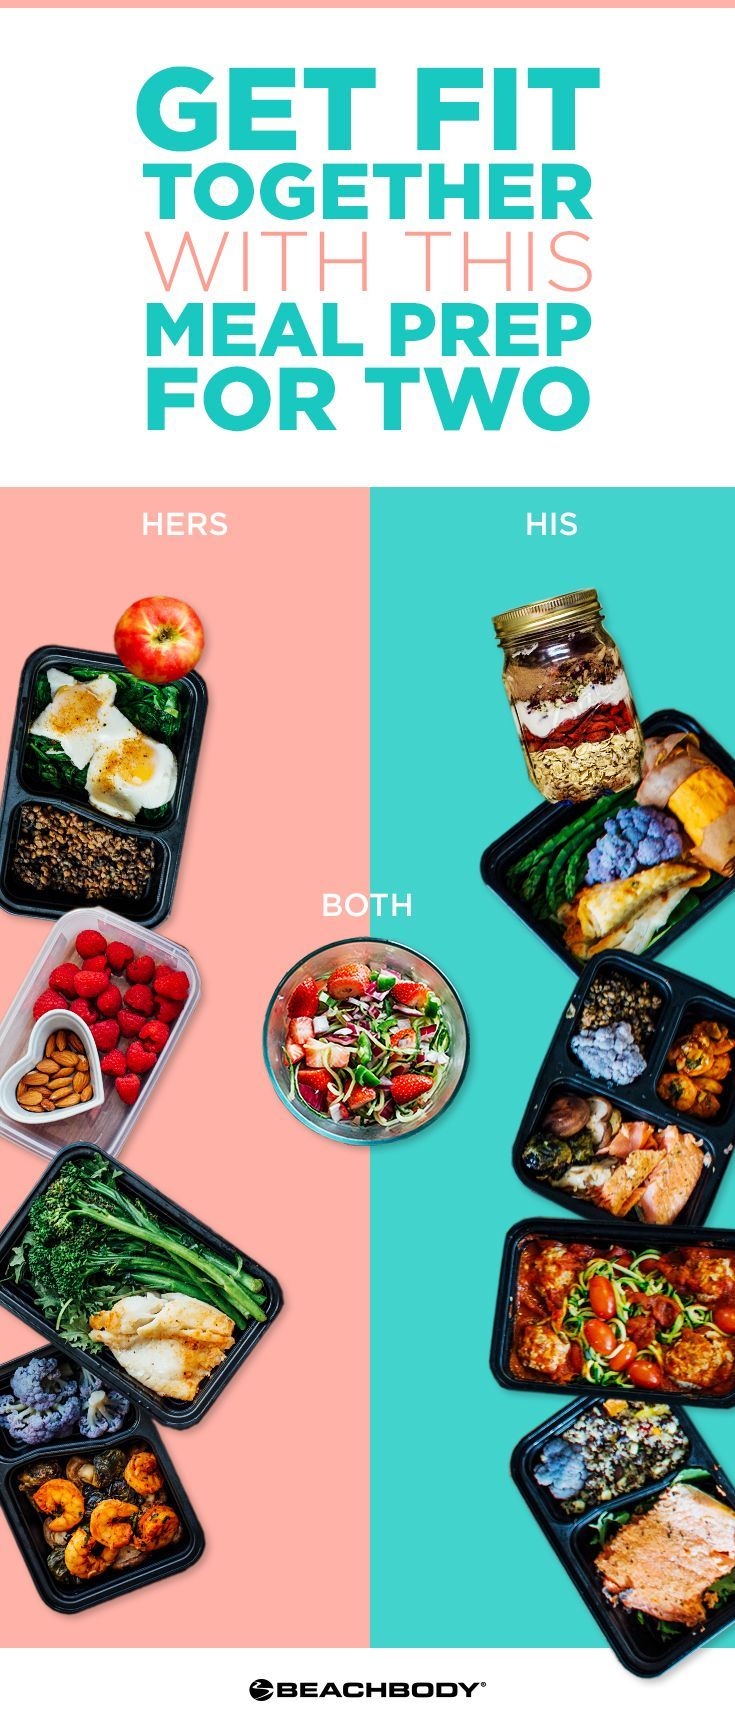 Check out this great meal prep for two! simple meal prep recipes! Perfect for staying healthy even when you're busy. #FITNESSPLAN